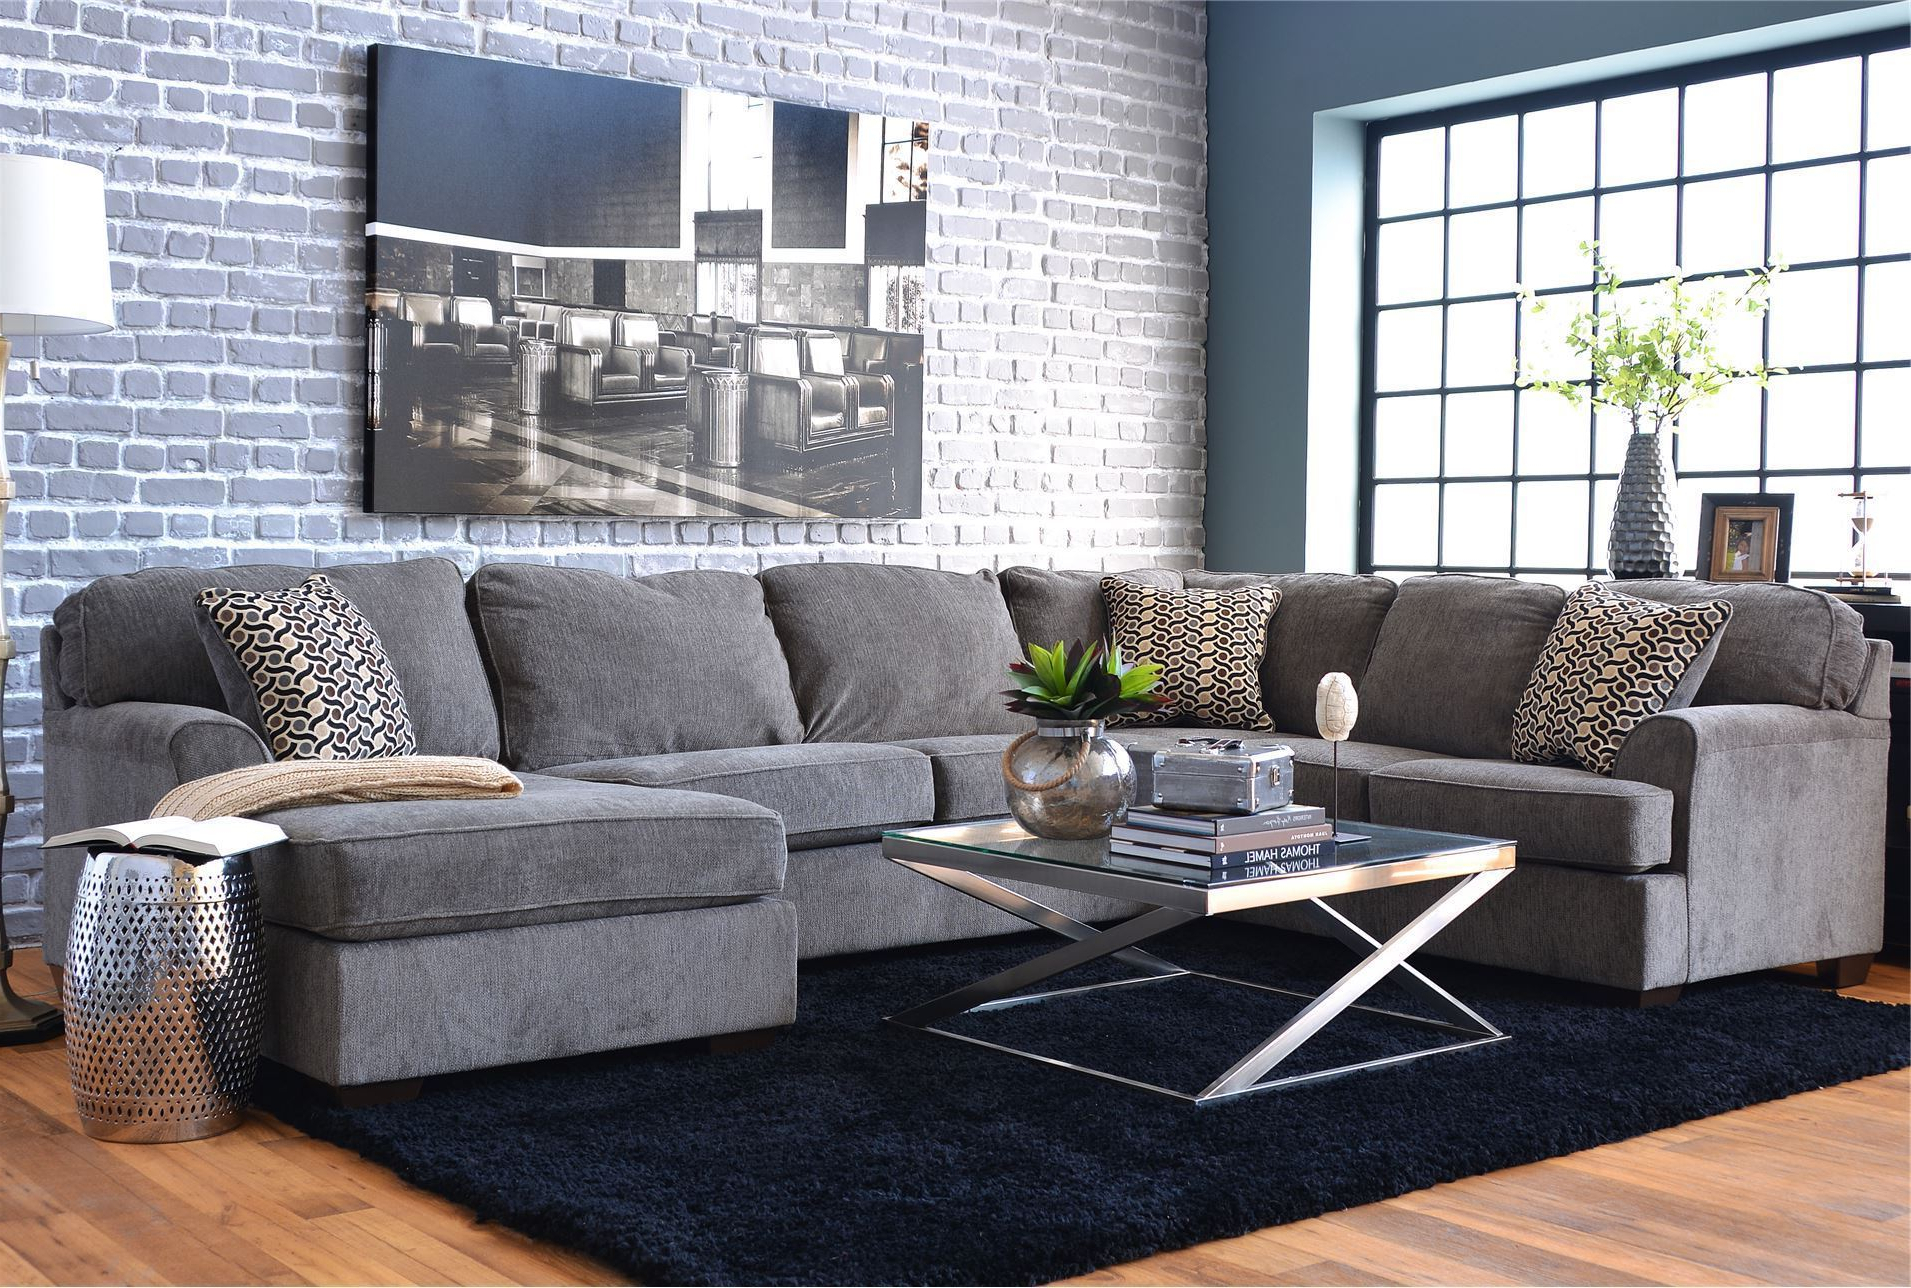 Sectional Sofa 3 Piece With Chaise Amazon Com Case Andrea Milano With Regard To Well Known Evan 2 Piece Sectionals With Raf Chaise (View 17 of 20)